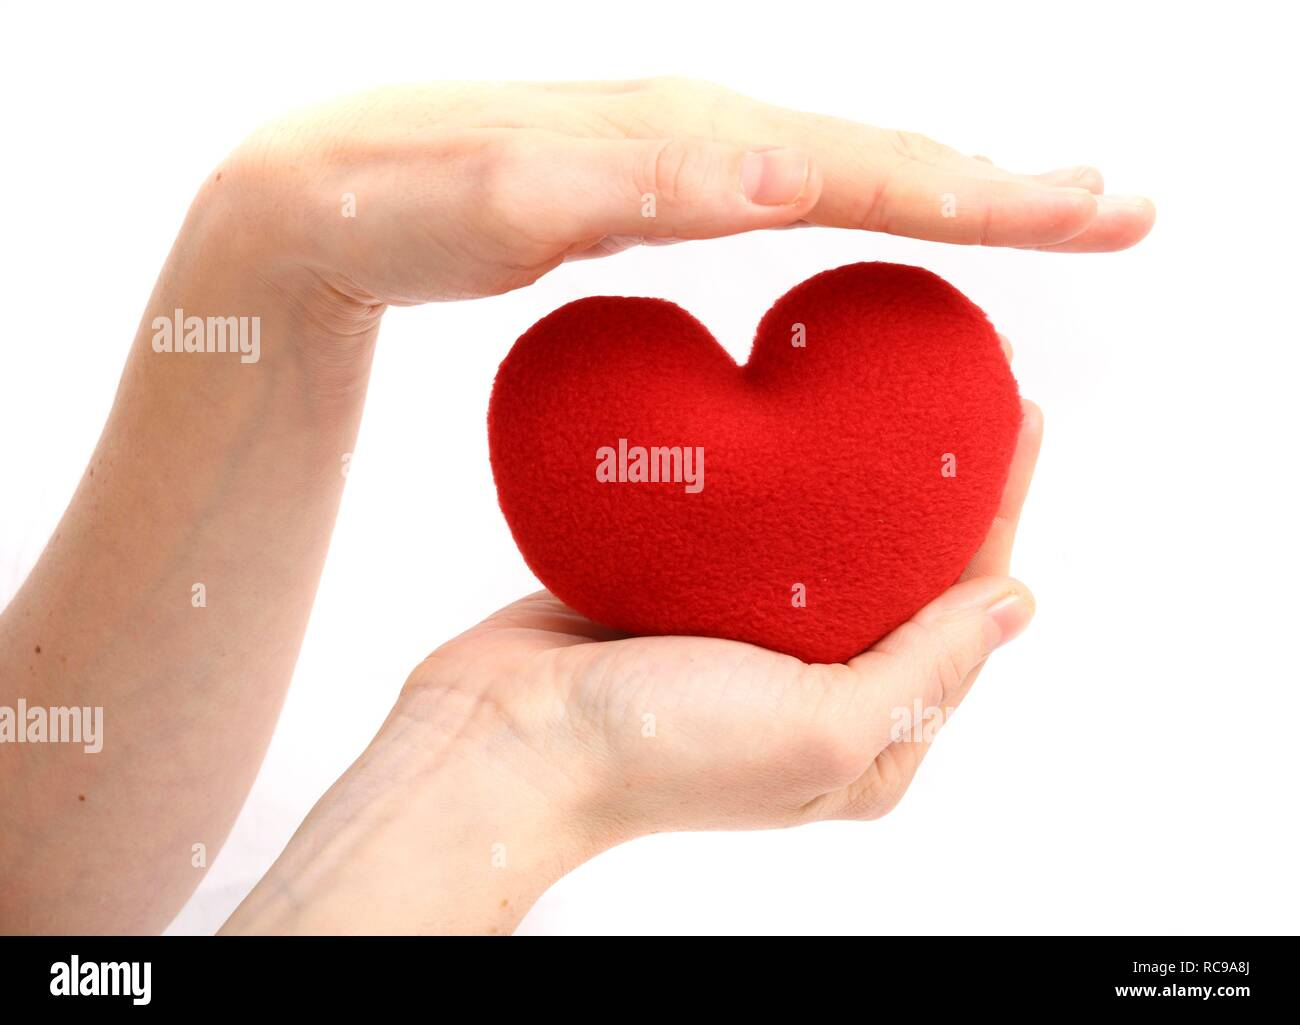 Hand being held protectively above a red heart, symbolic image for heart disease, heart attack, a diseased heart, cardiology - Stock Image